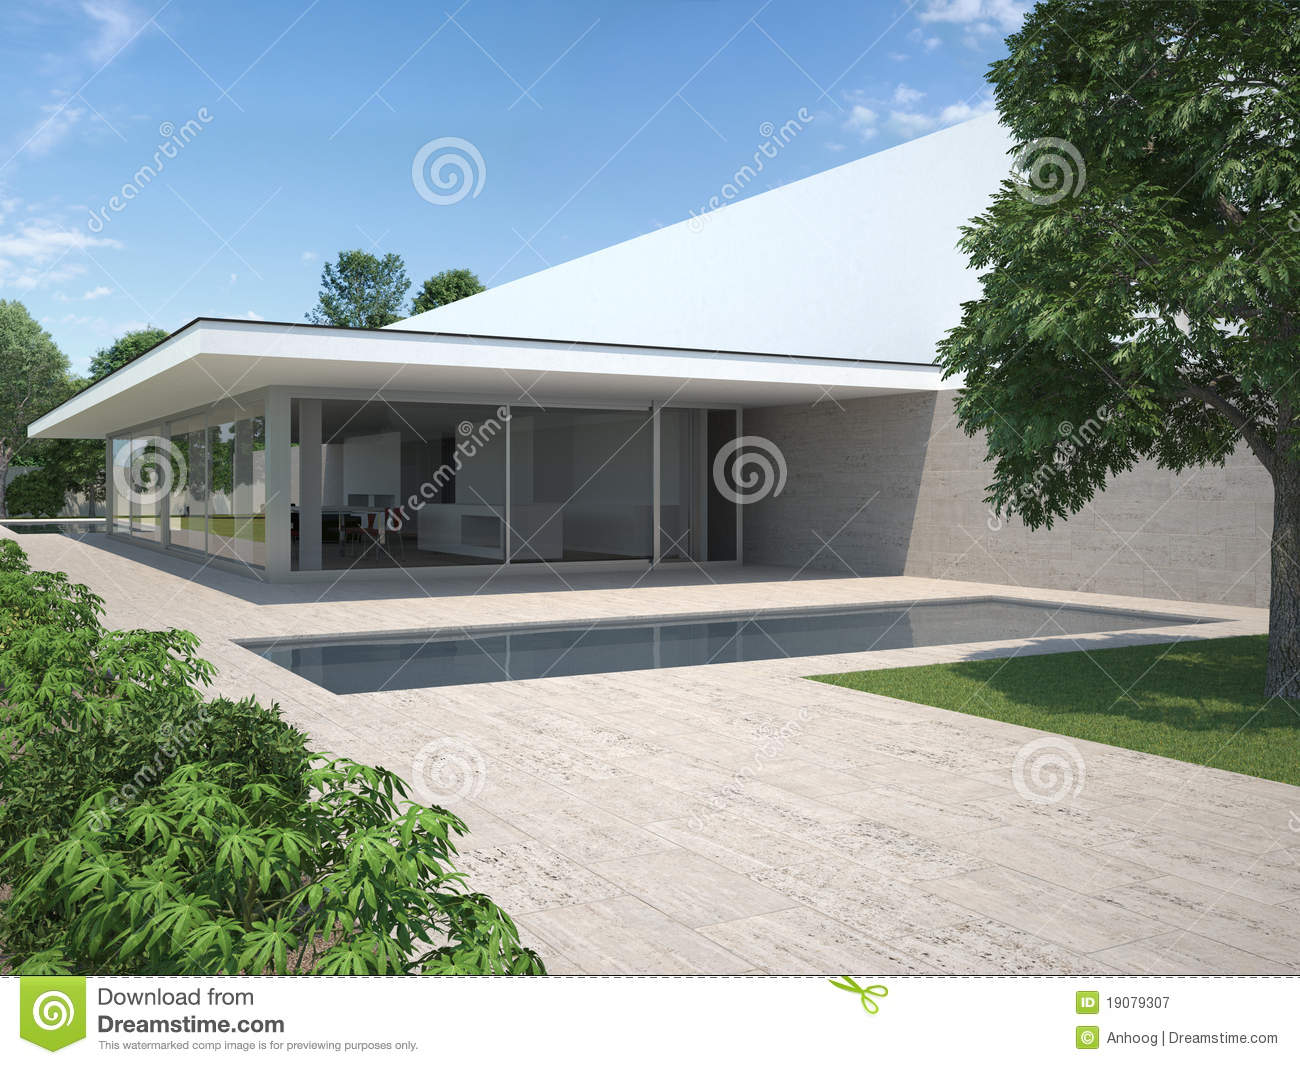 Huis Modern Huis : Modern house with garden and pool stock illustration illustration